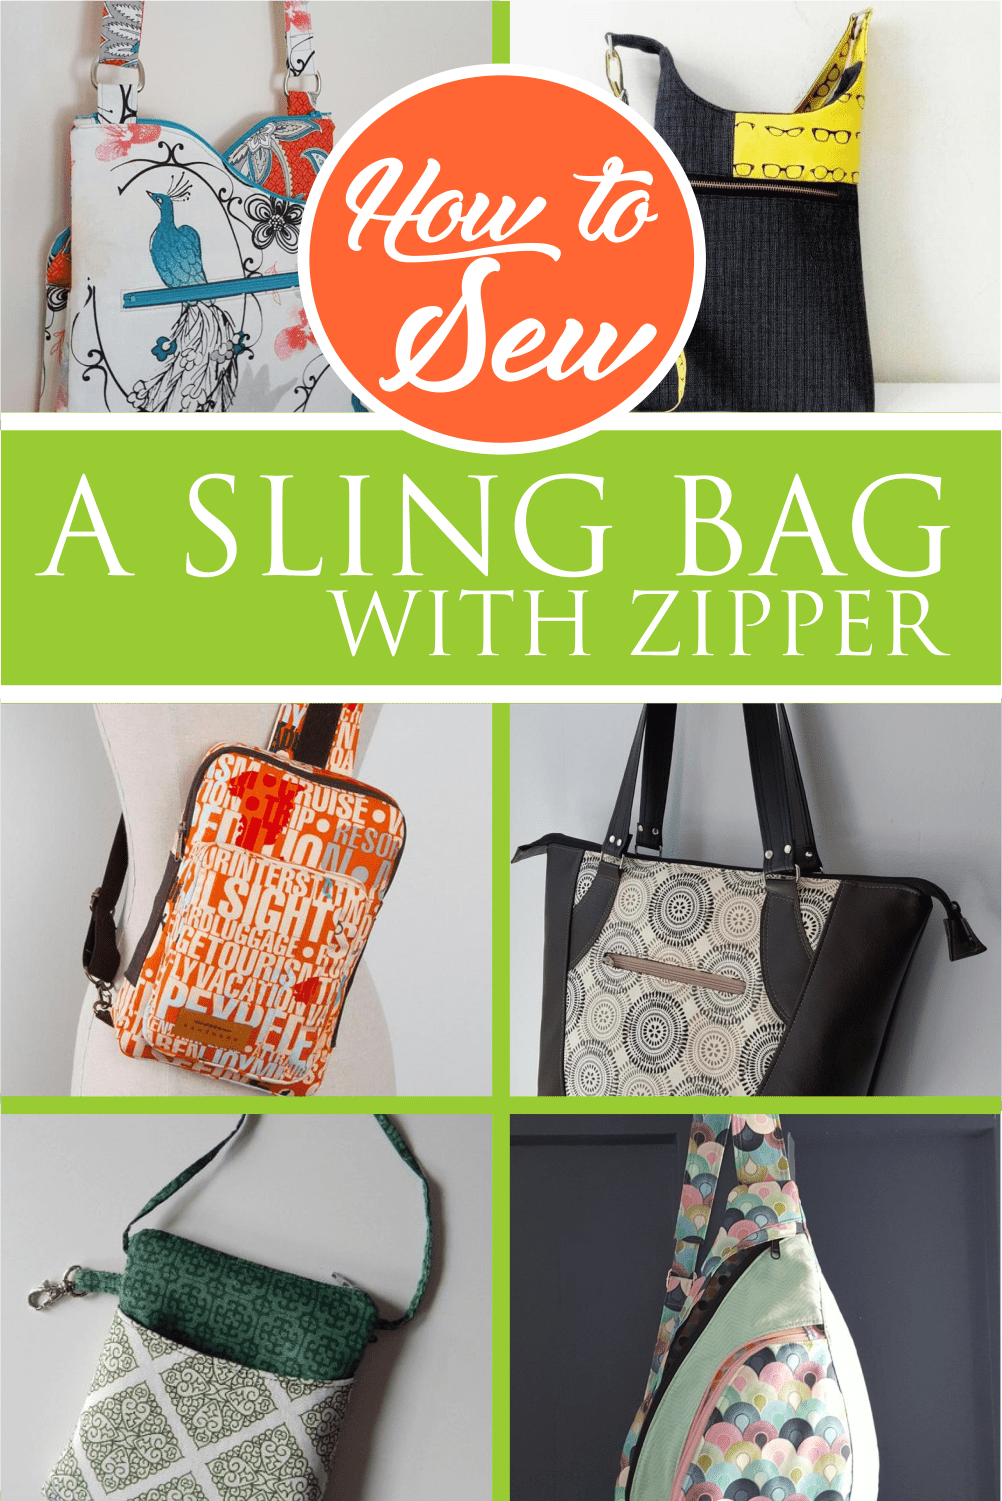 How to Sew a Sling Bag with Zipper